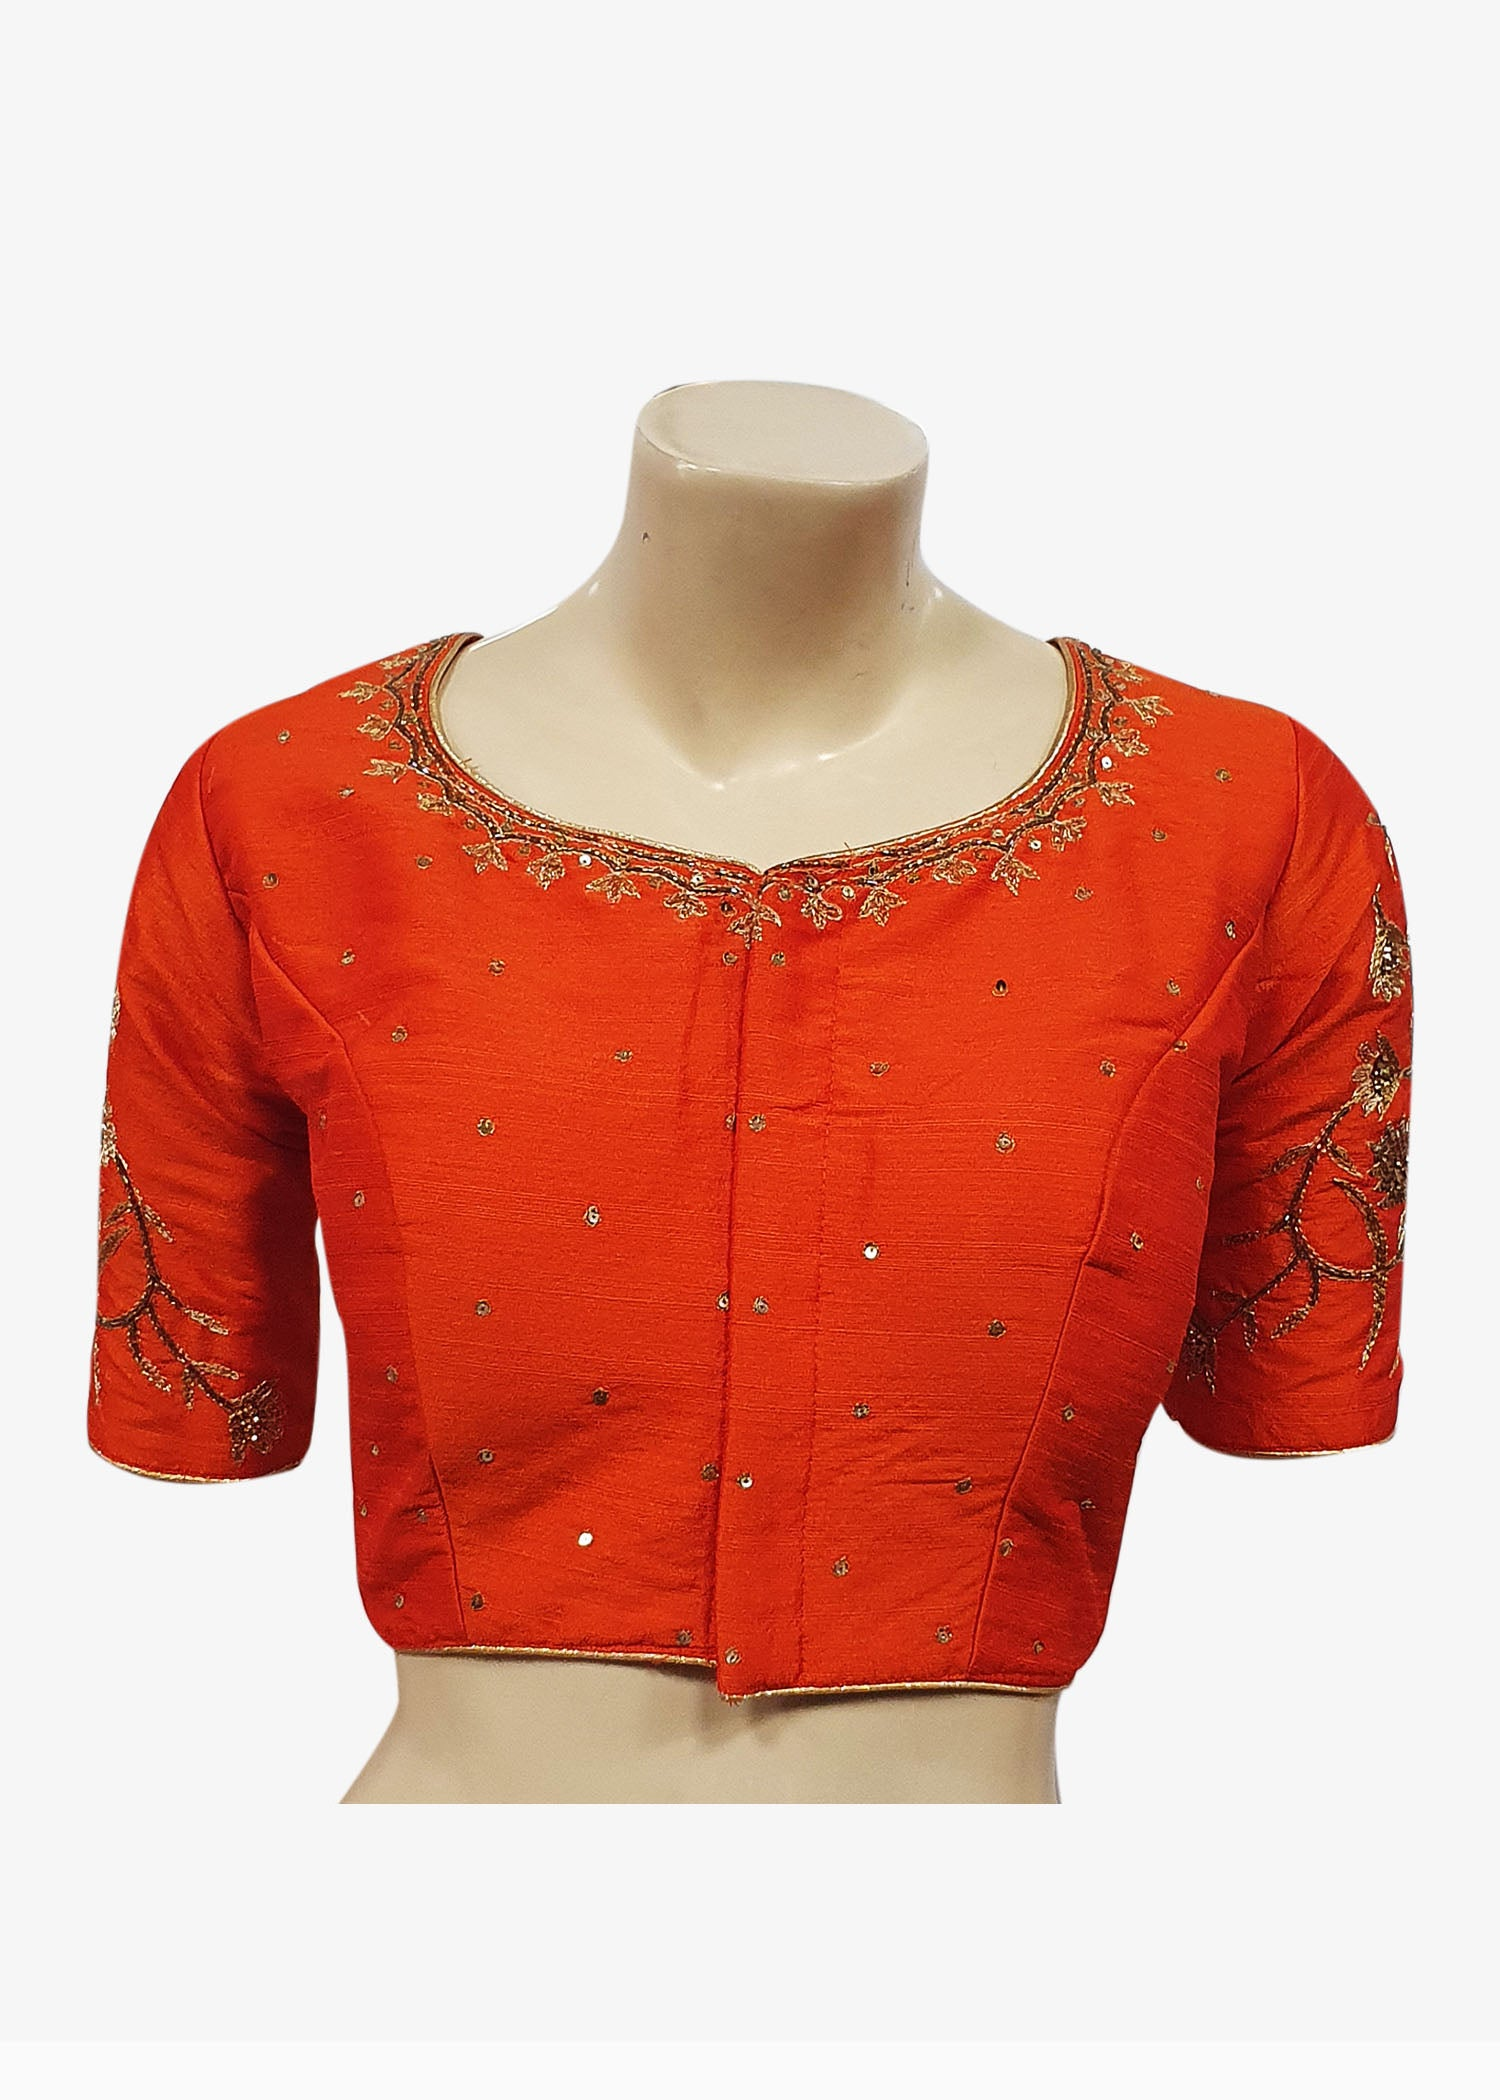 Orange Raw Silk Gold Embroidered Saree Blouse - Front Hooks